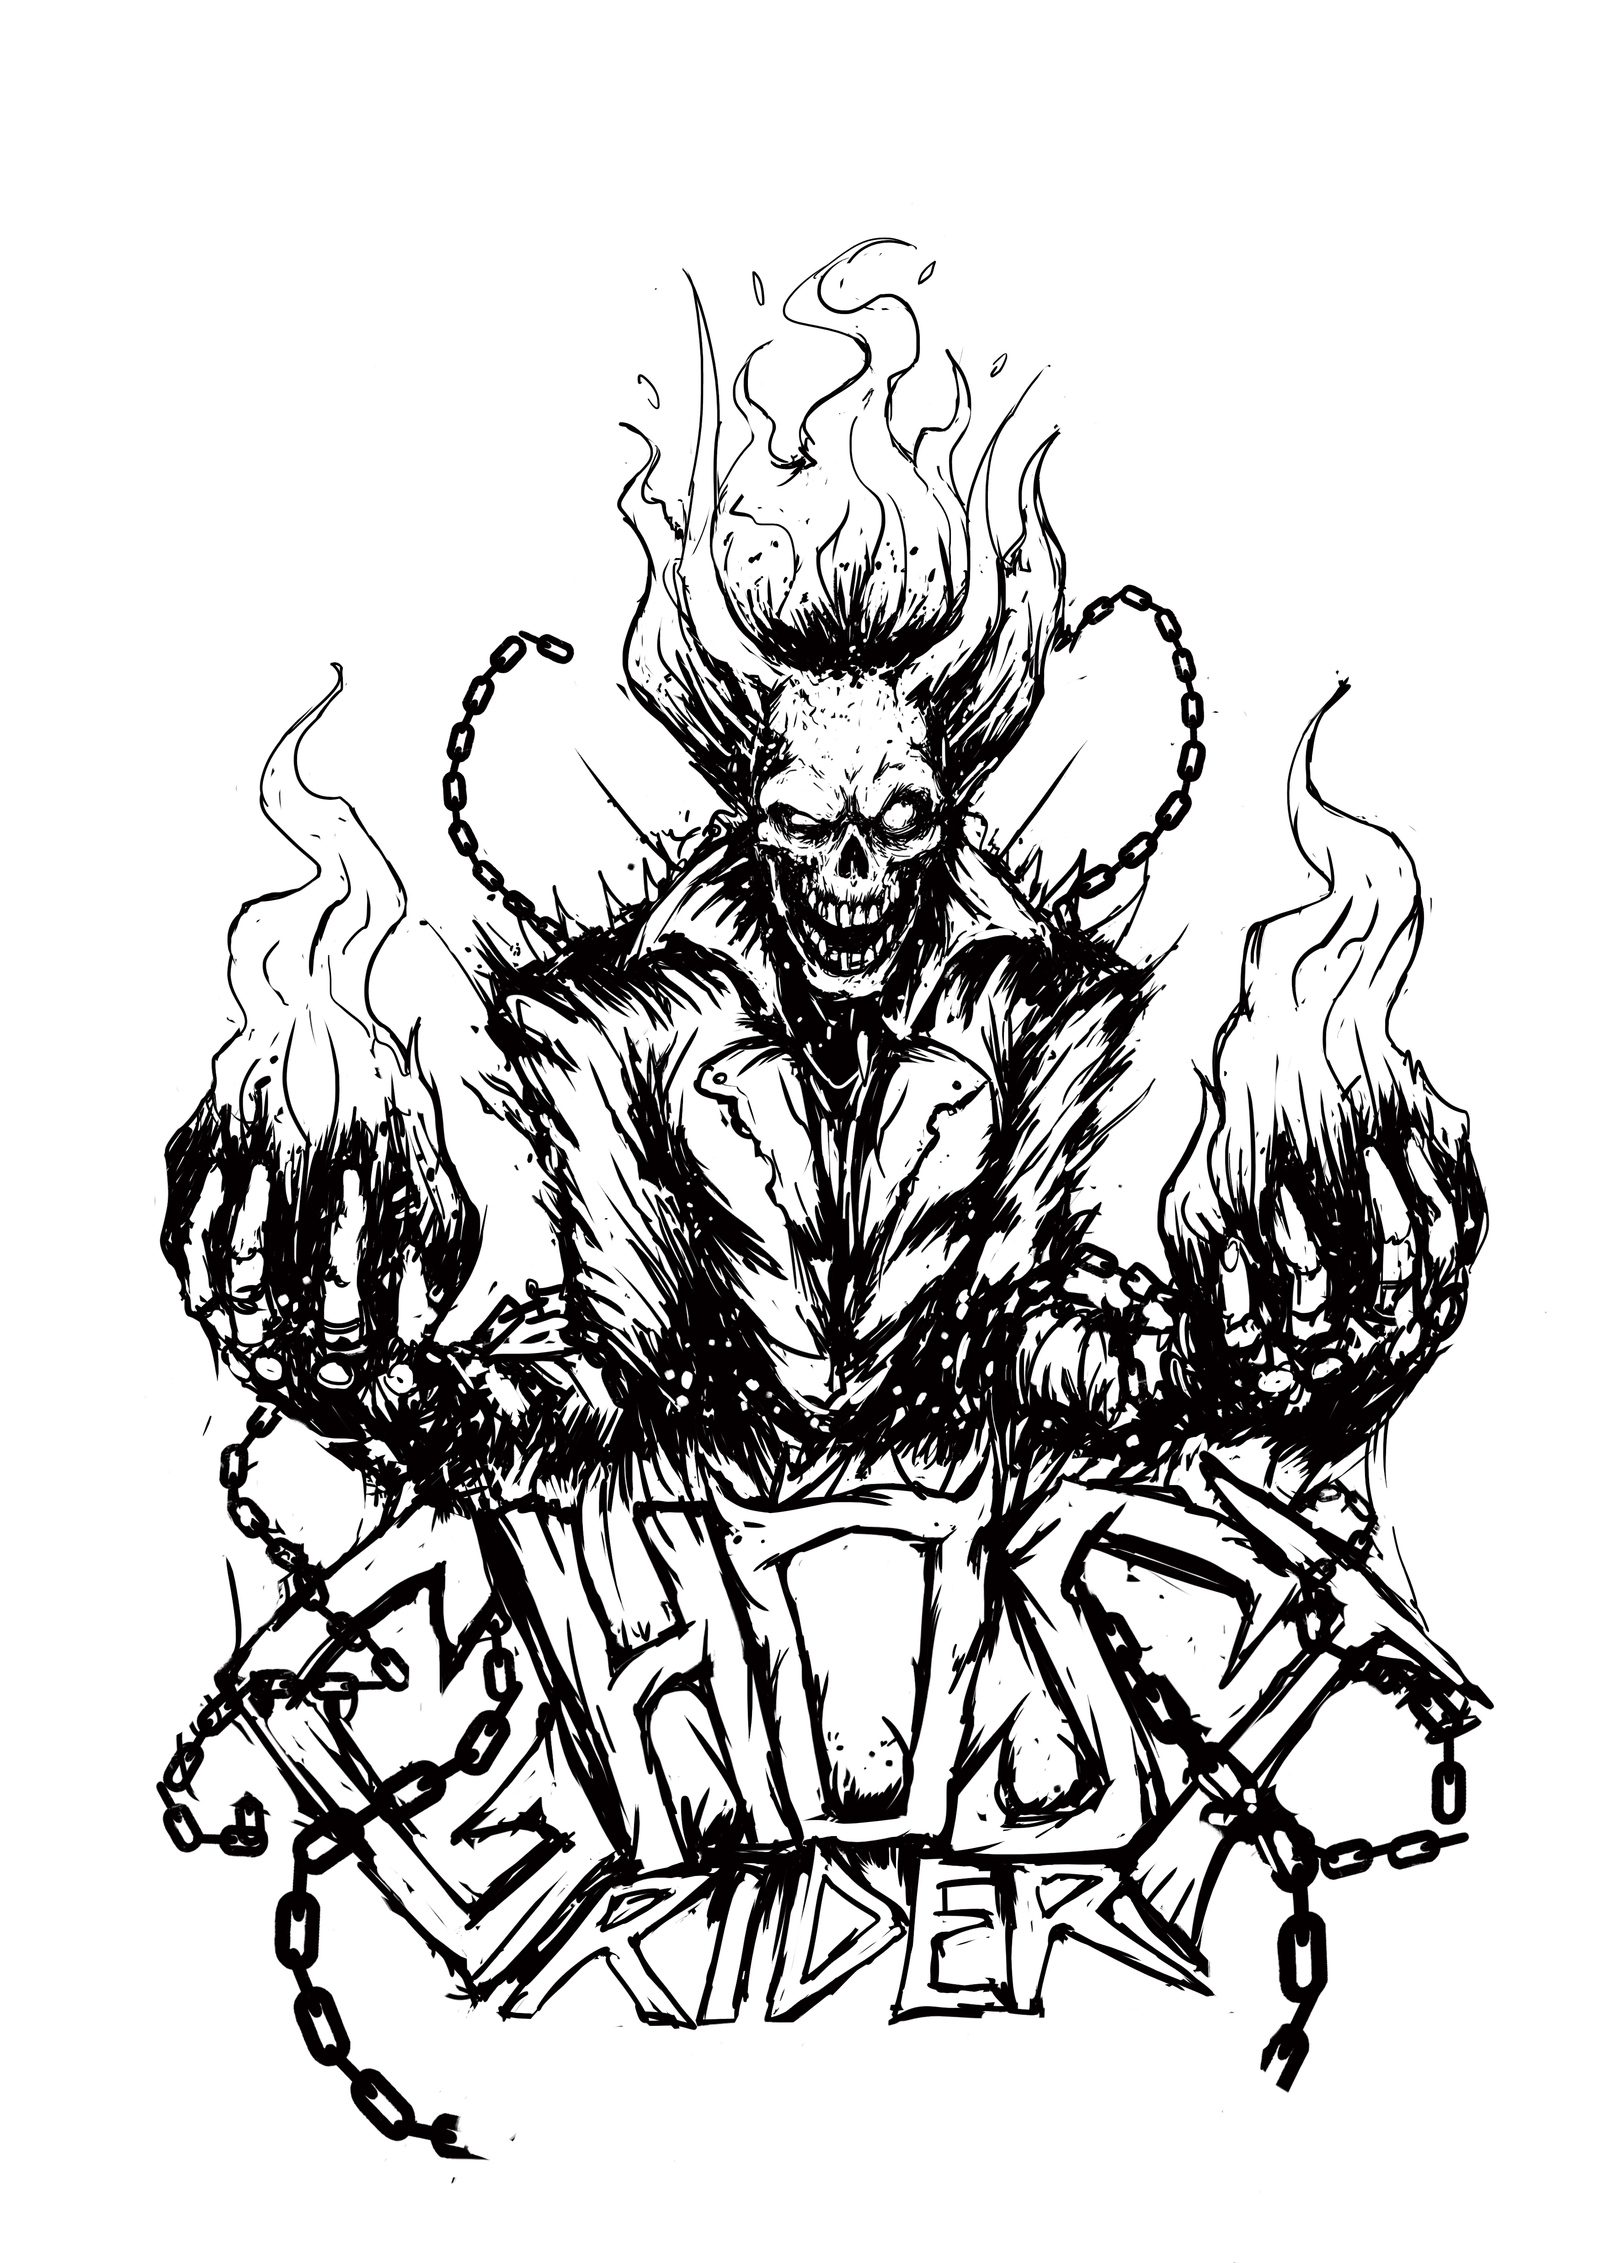 ghost rider coloring sheets ghost rider coloring page coloring home rider coloring ghost sheets